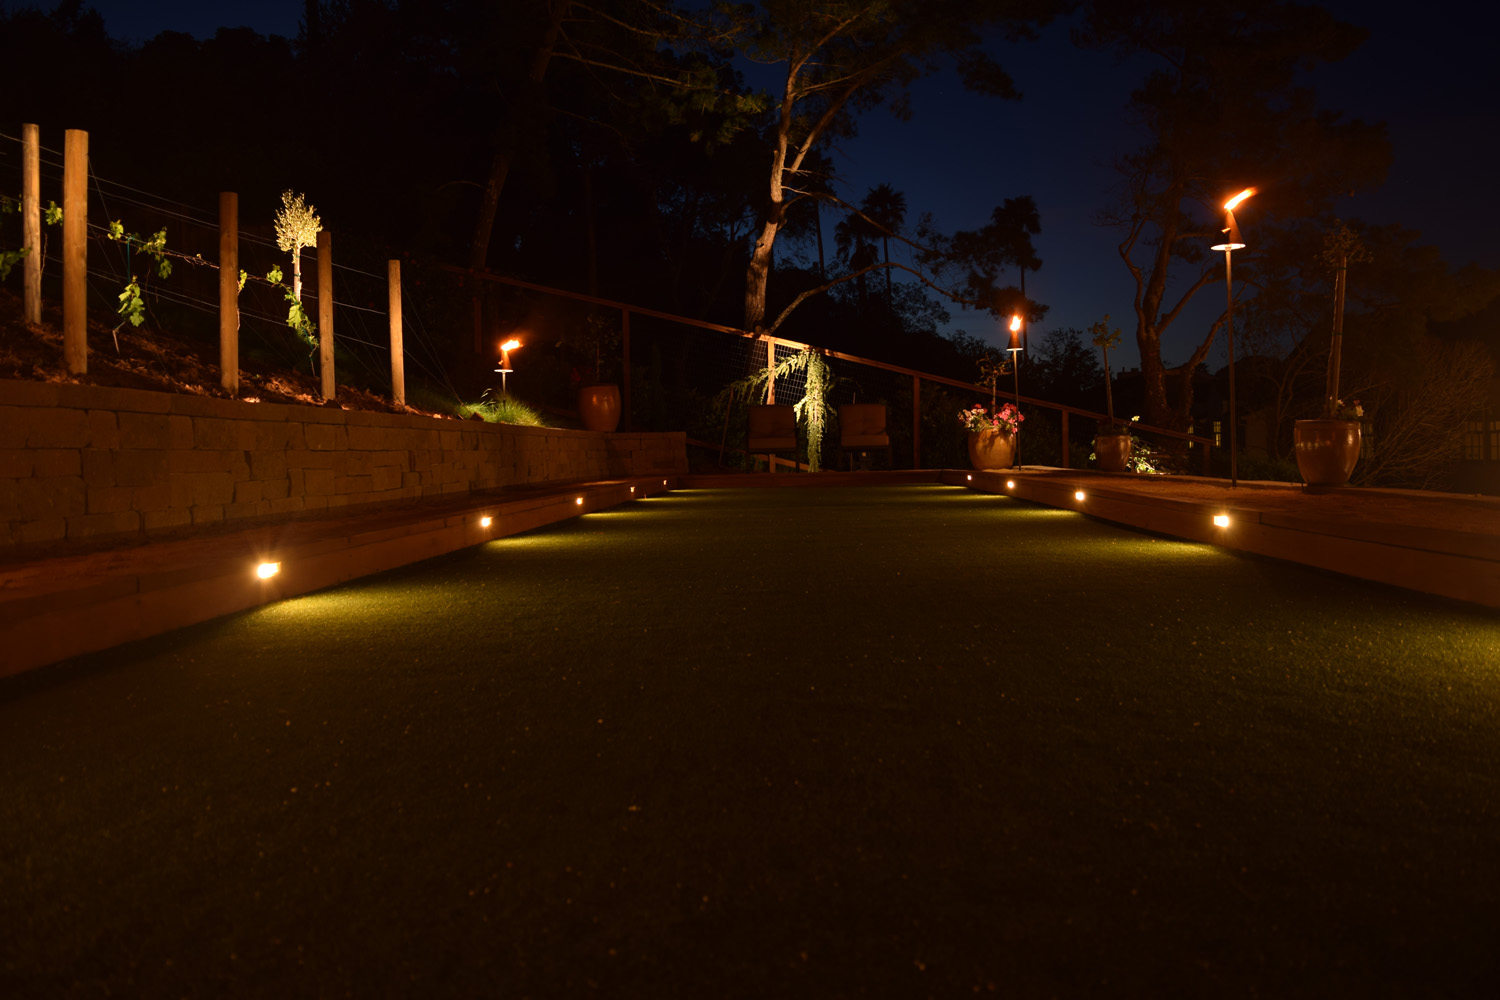 Bocce Ball court lights